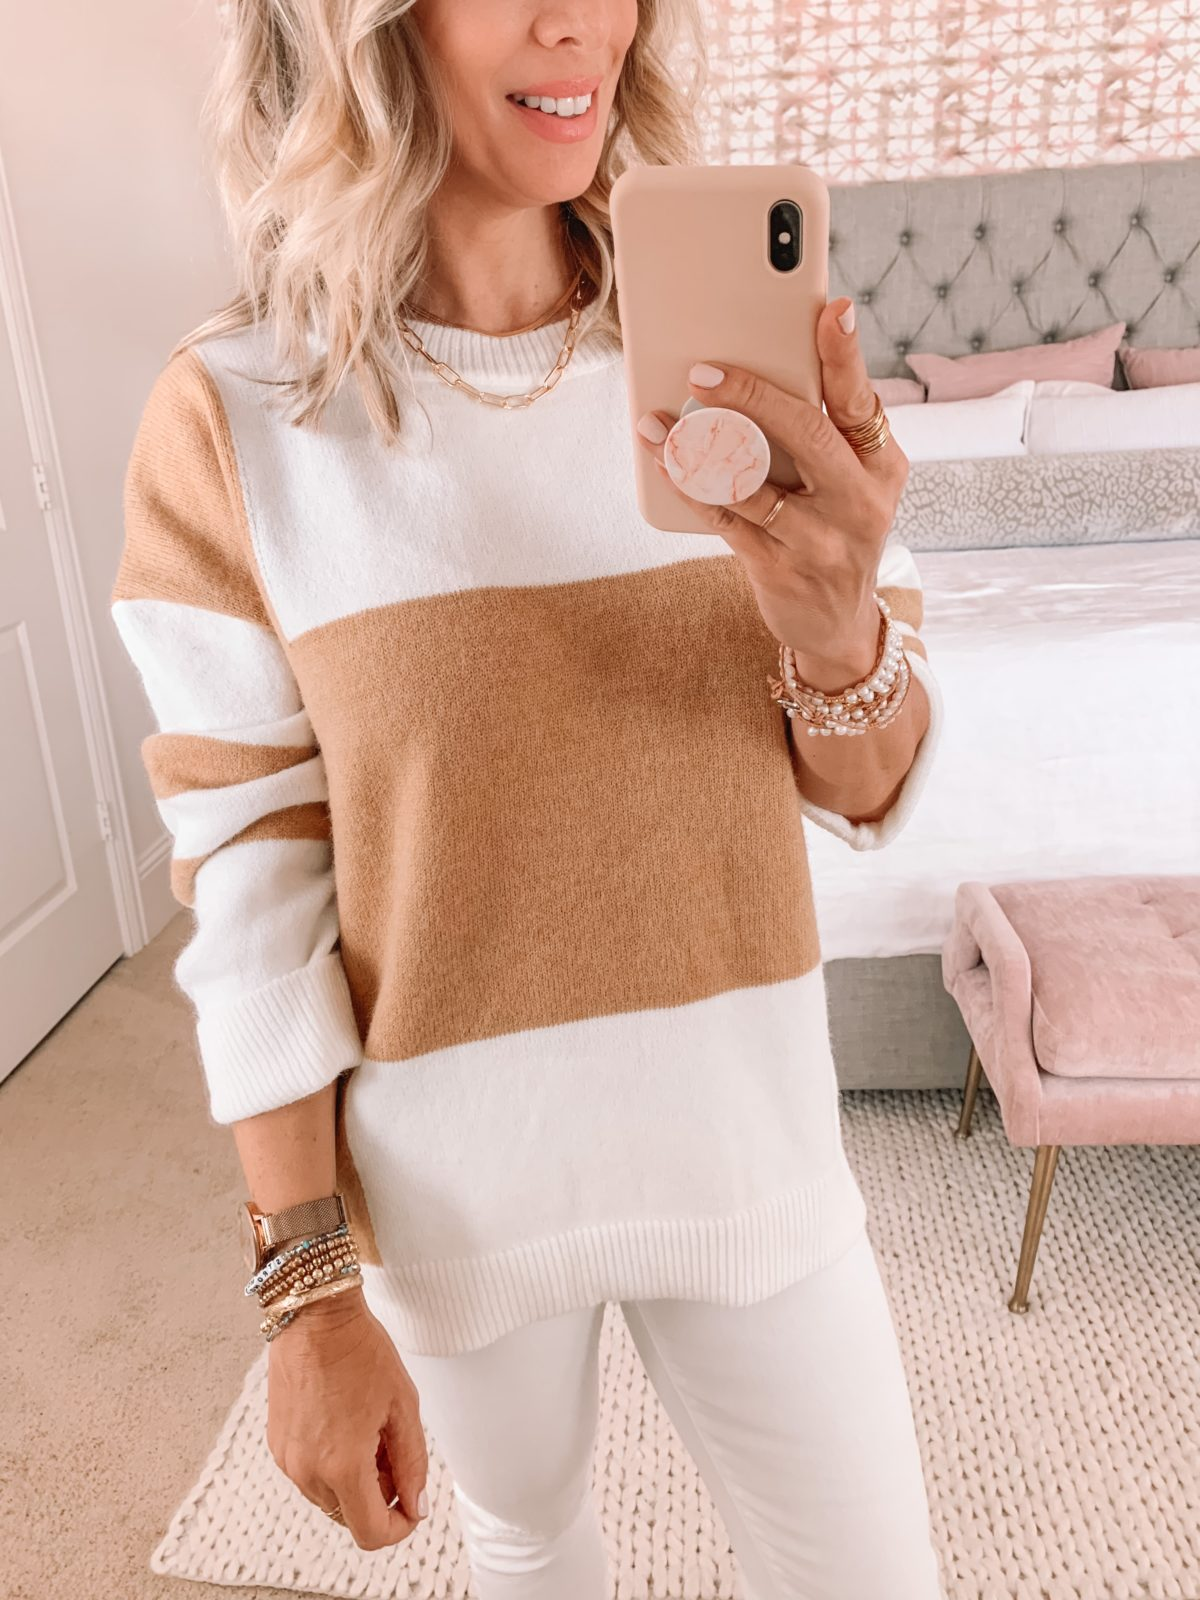 Amazon Fashion Faves, Colorblock Sweater, White Jeans, Denim, Fall Outfit